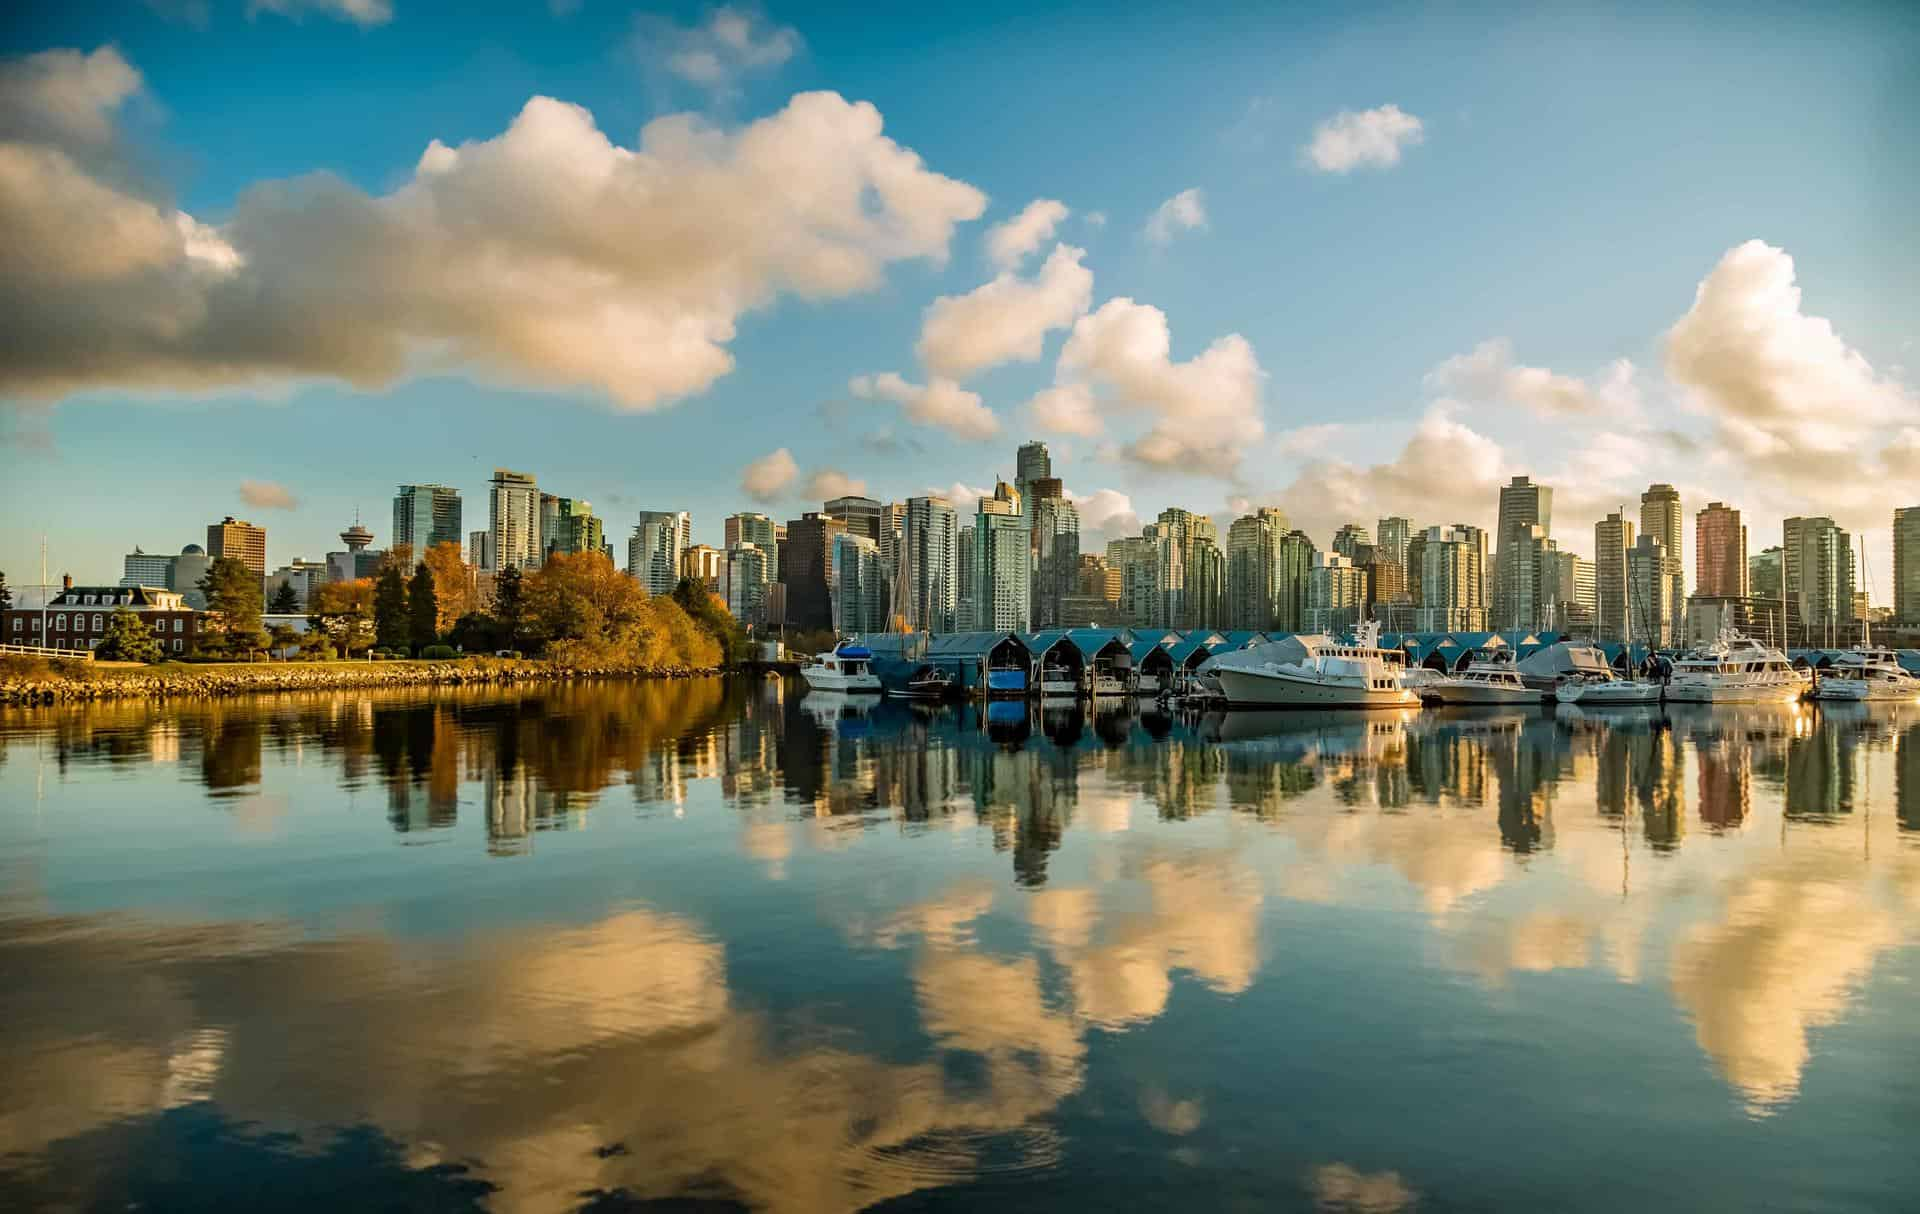 The skyline reflected in the water